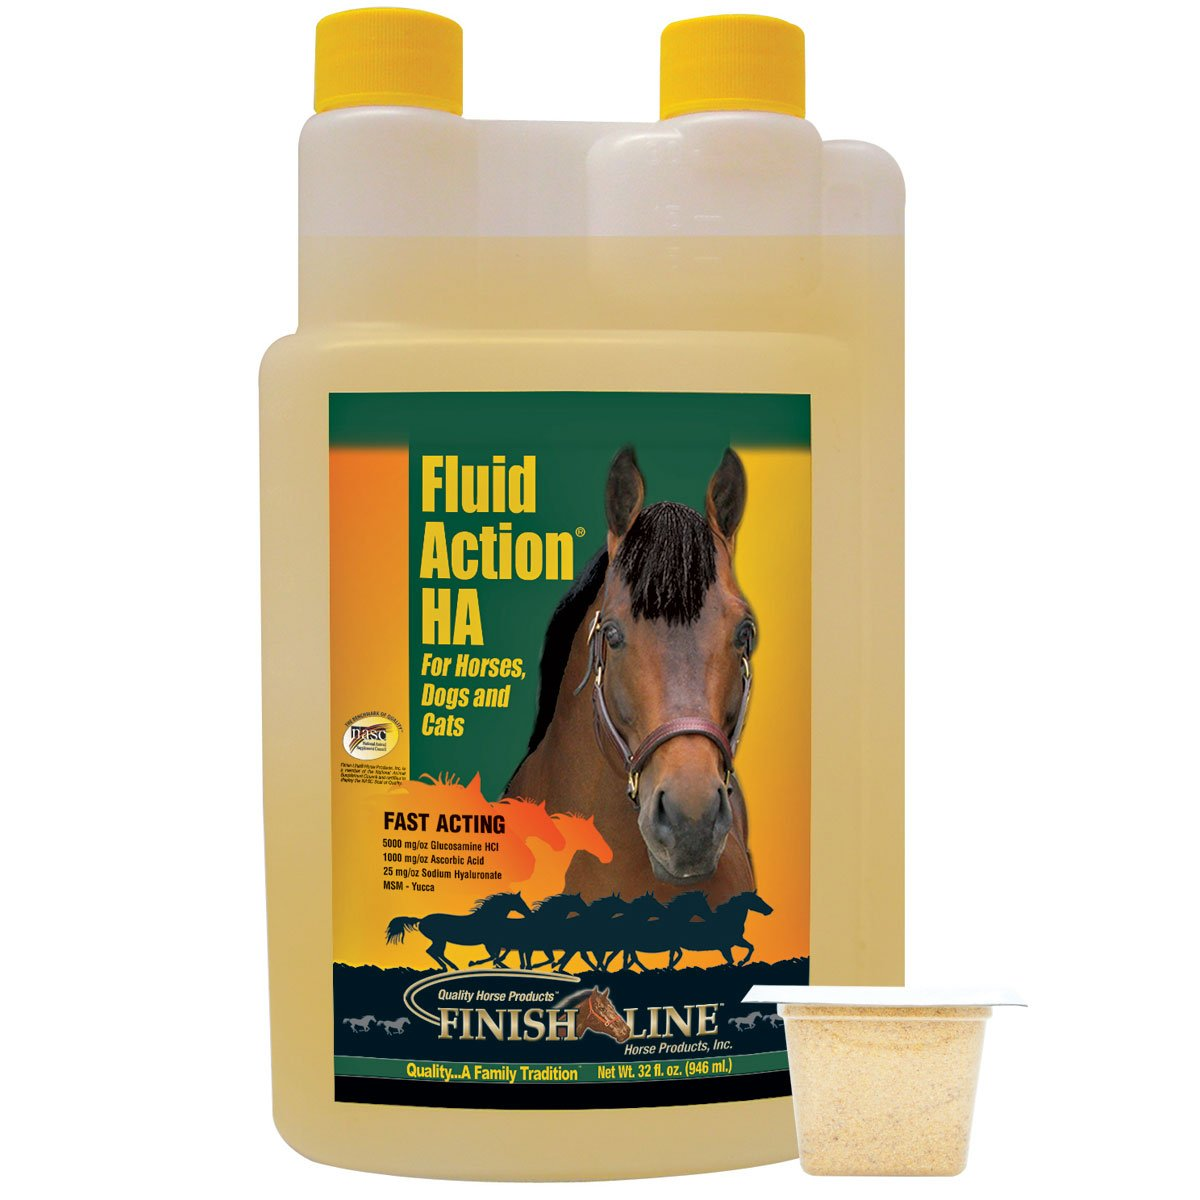 Finish Line Fluid Action Ha Joint Therapy by Finish Line (Image #2)